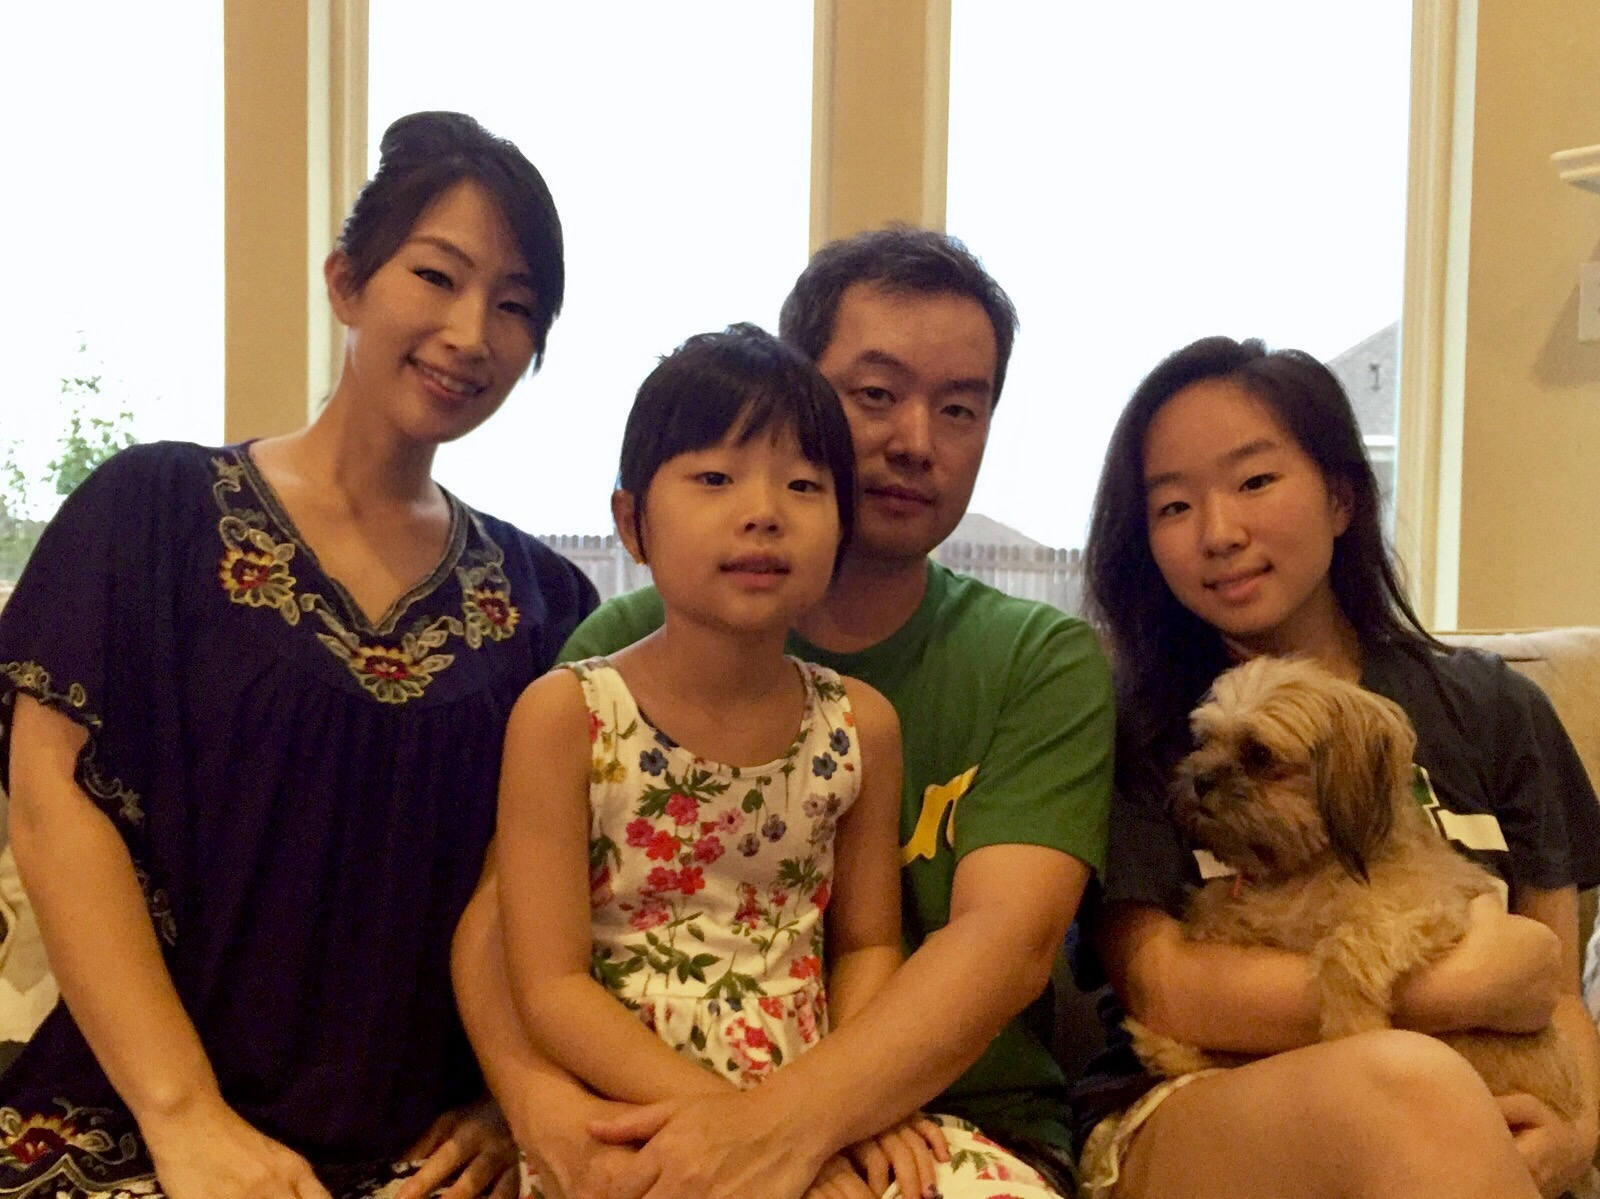 Tae and her family